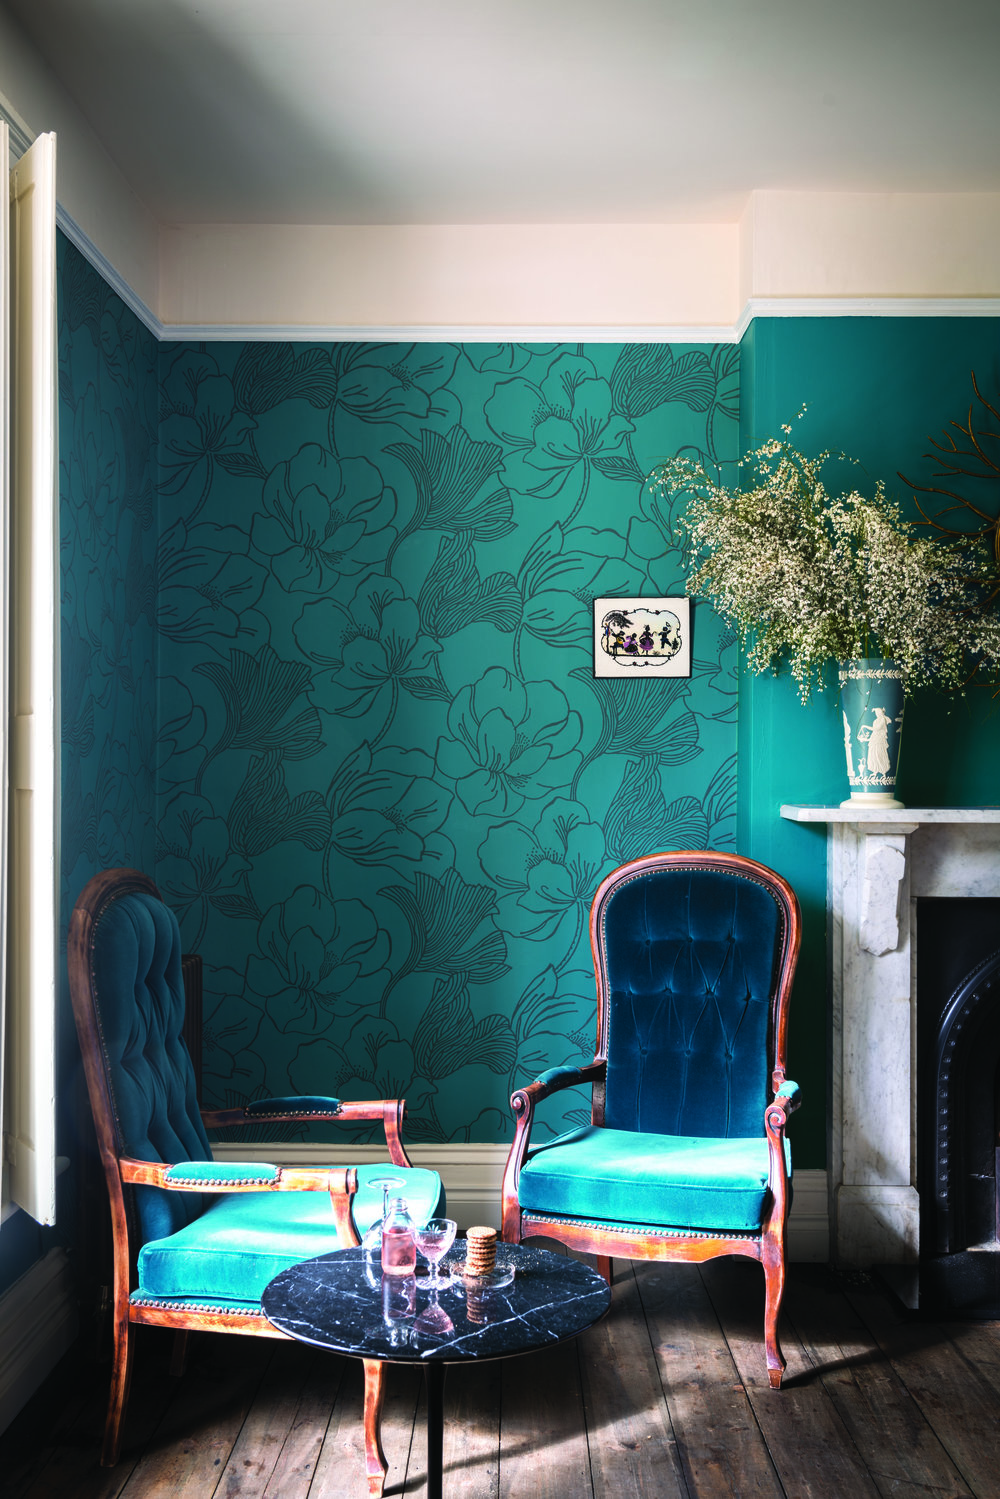 BP 5605    , Wallpaper: Helleborus BP 5605    , Ceiling: Dimity® No.2008 Estate® Emulsion    , Woodwork: Wimborne White® No.239 Estate® Eggshell